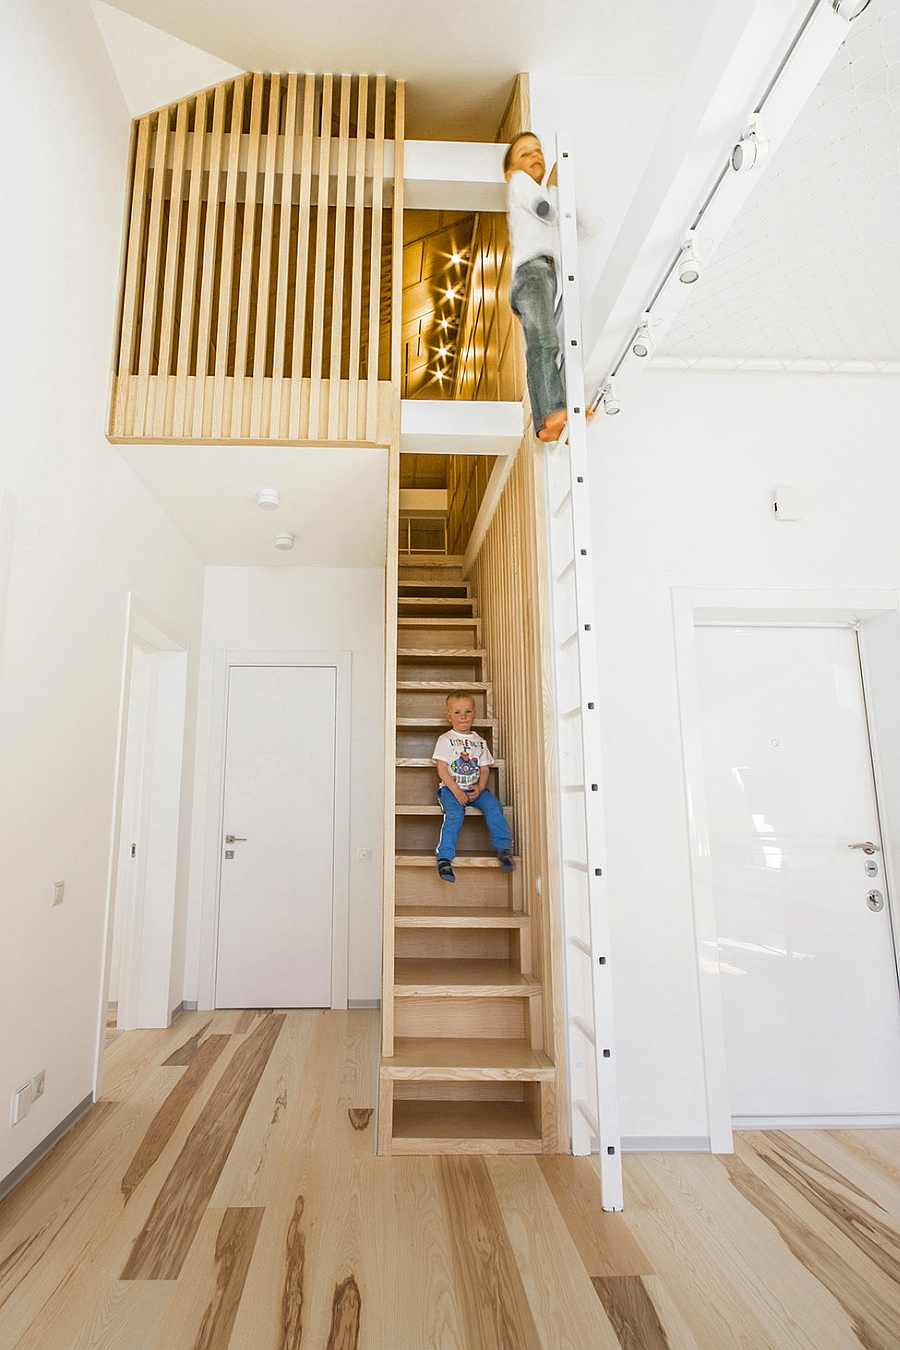 Attic Ladders For Small Spaces Attic Ideas